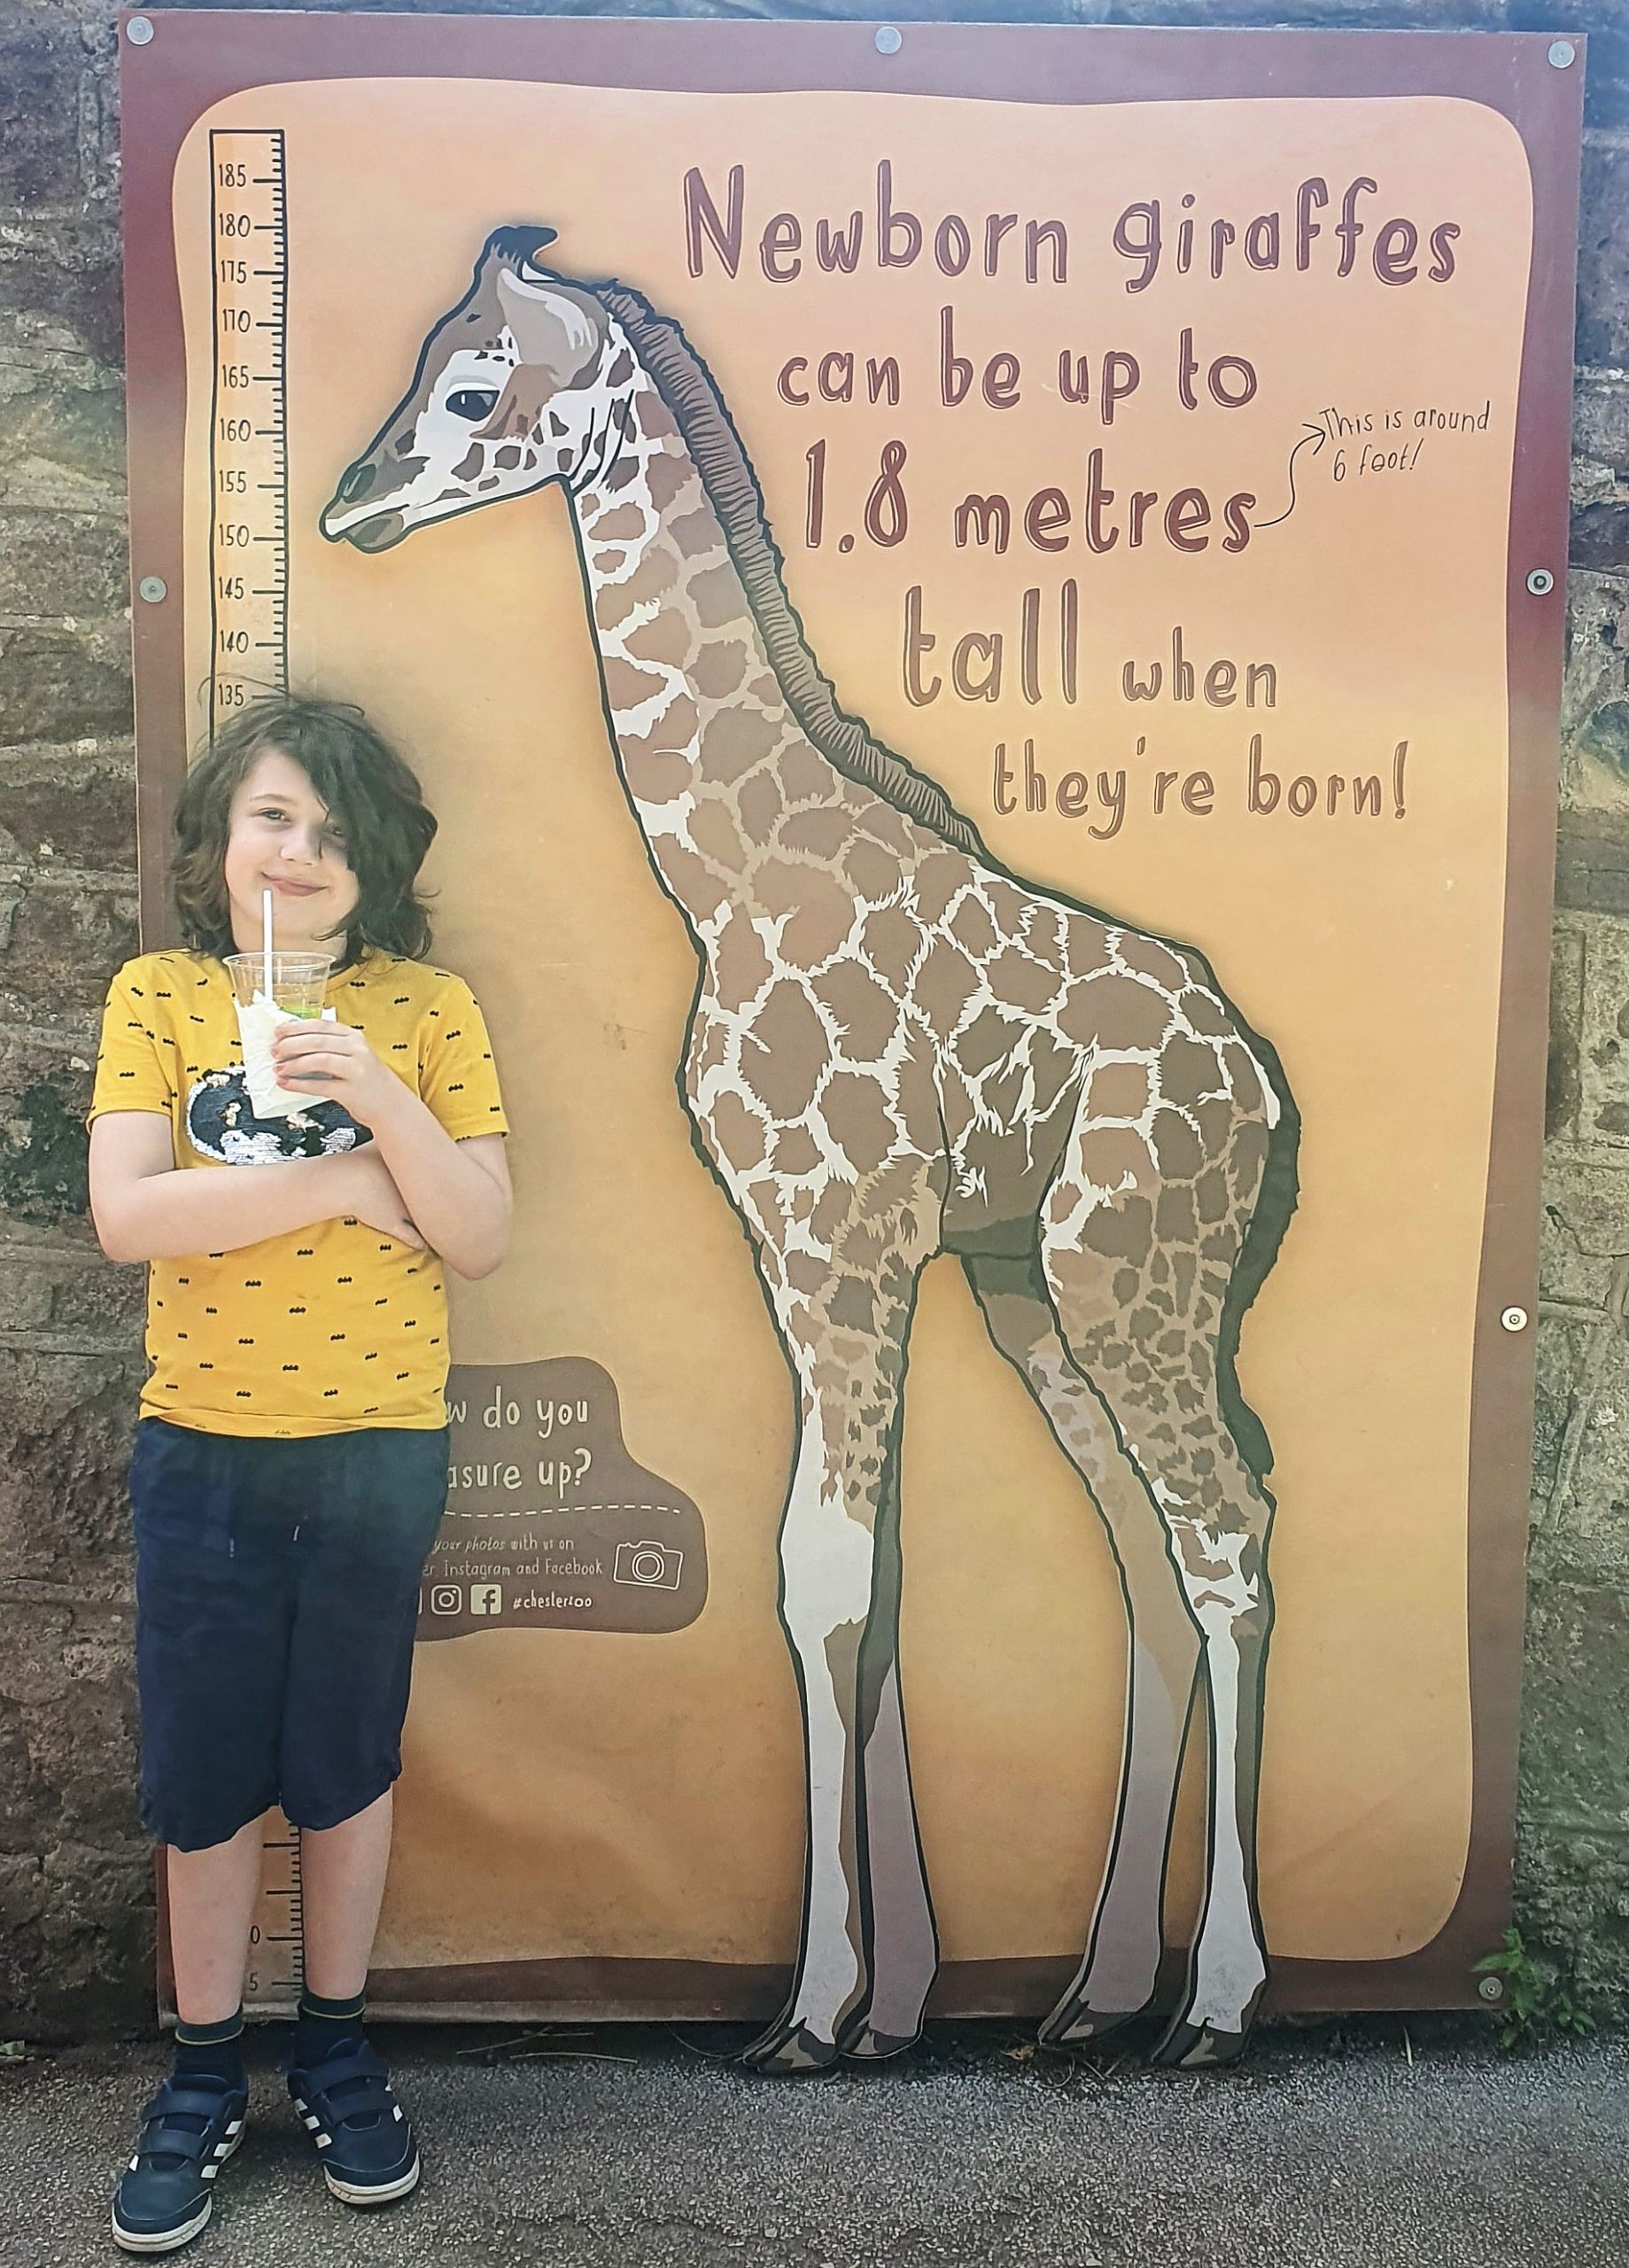 A boy stood next to a graphic showing the height of a baby giraffe